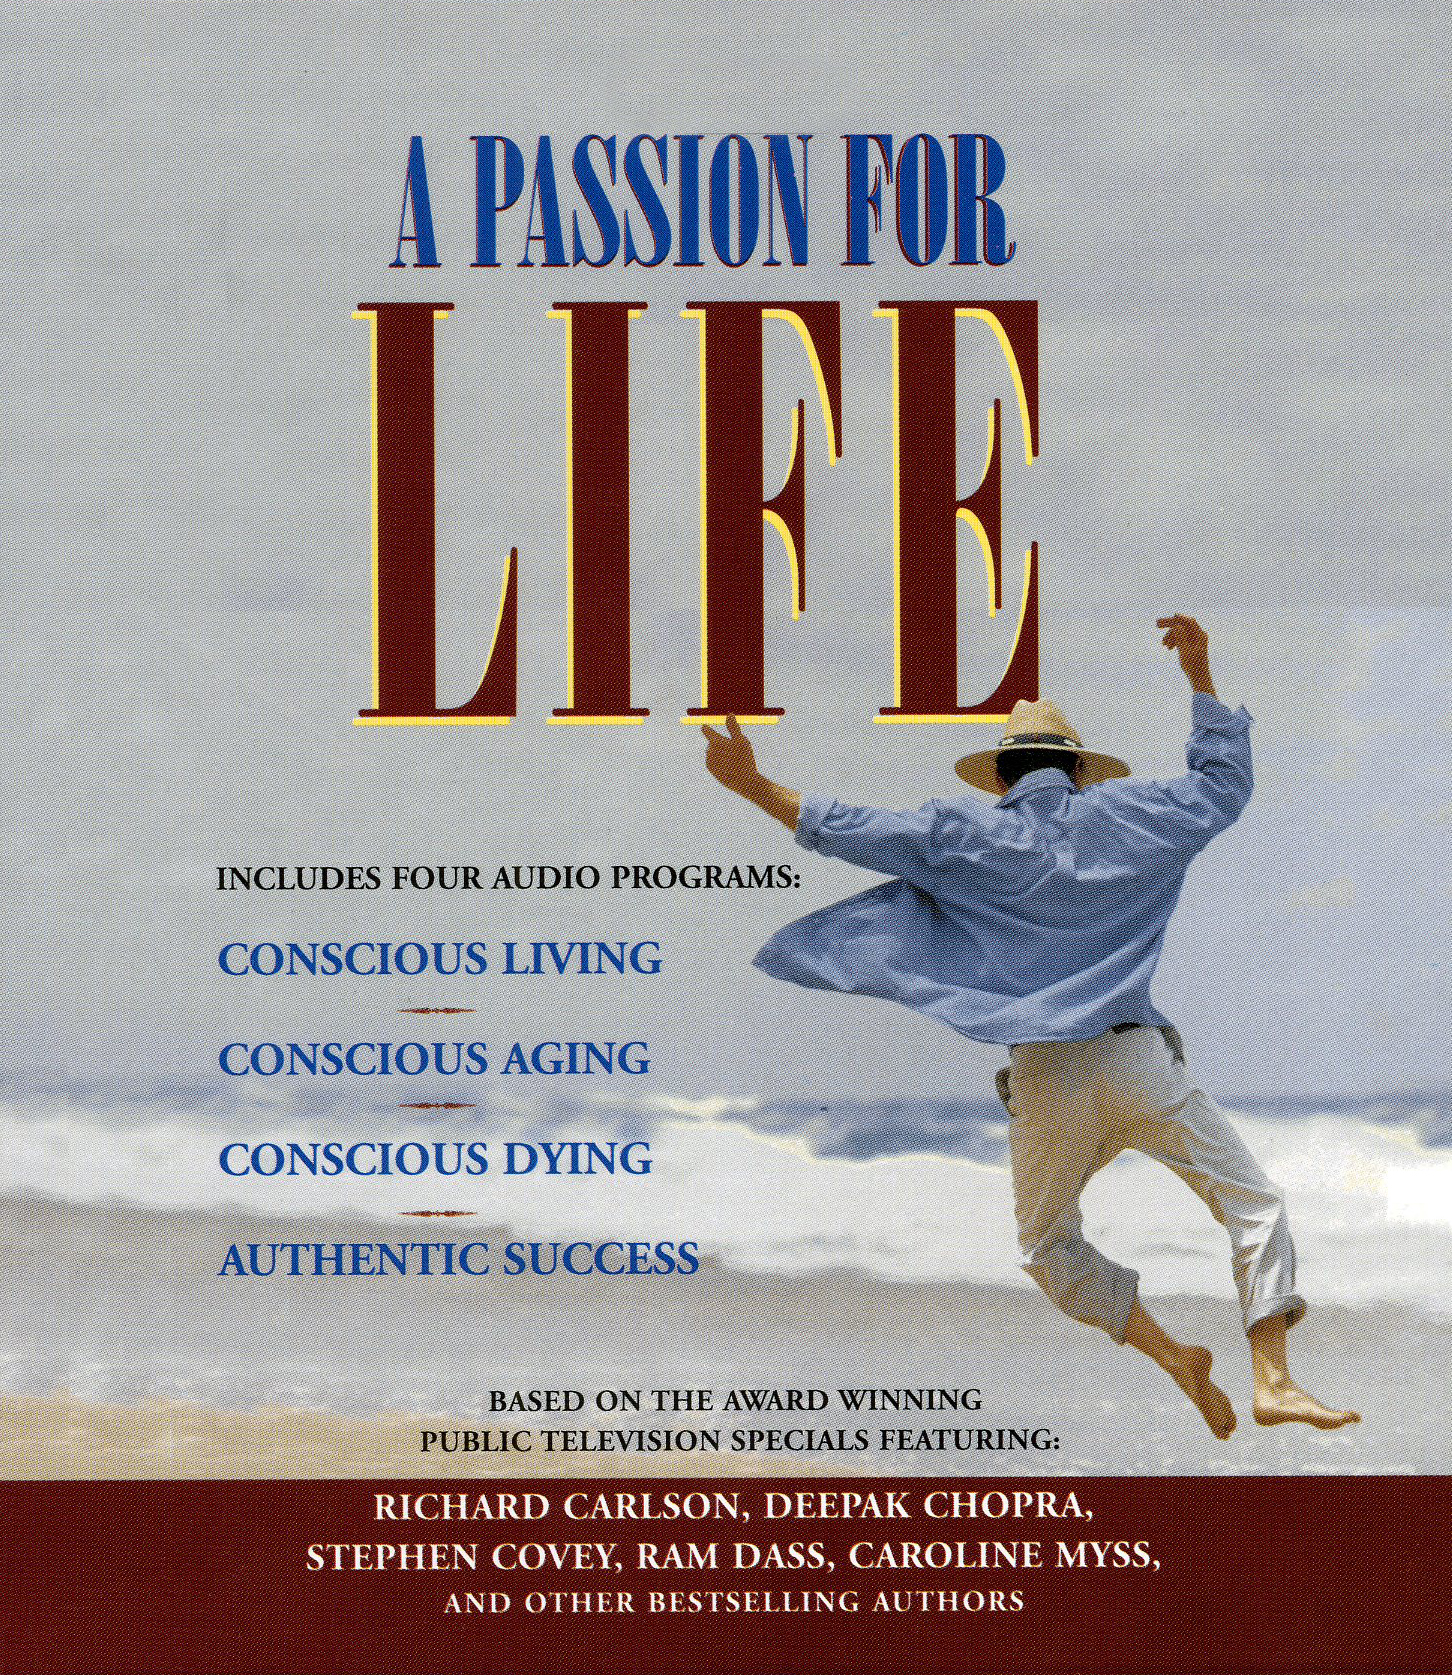 A Passion For a passion for life audiobook by stephen r. covey, deepak